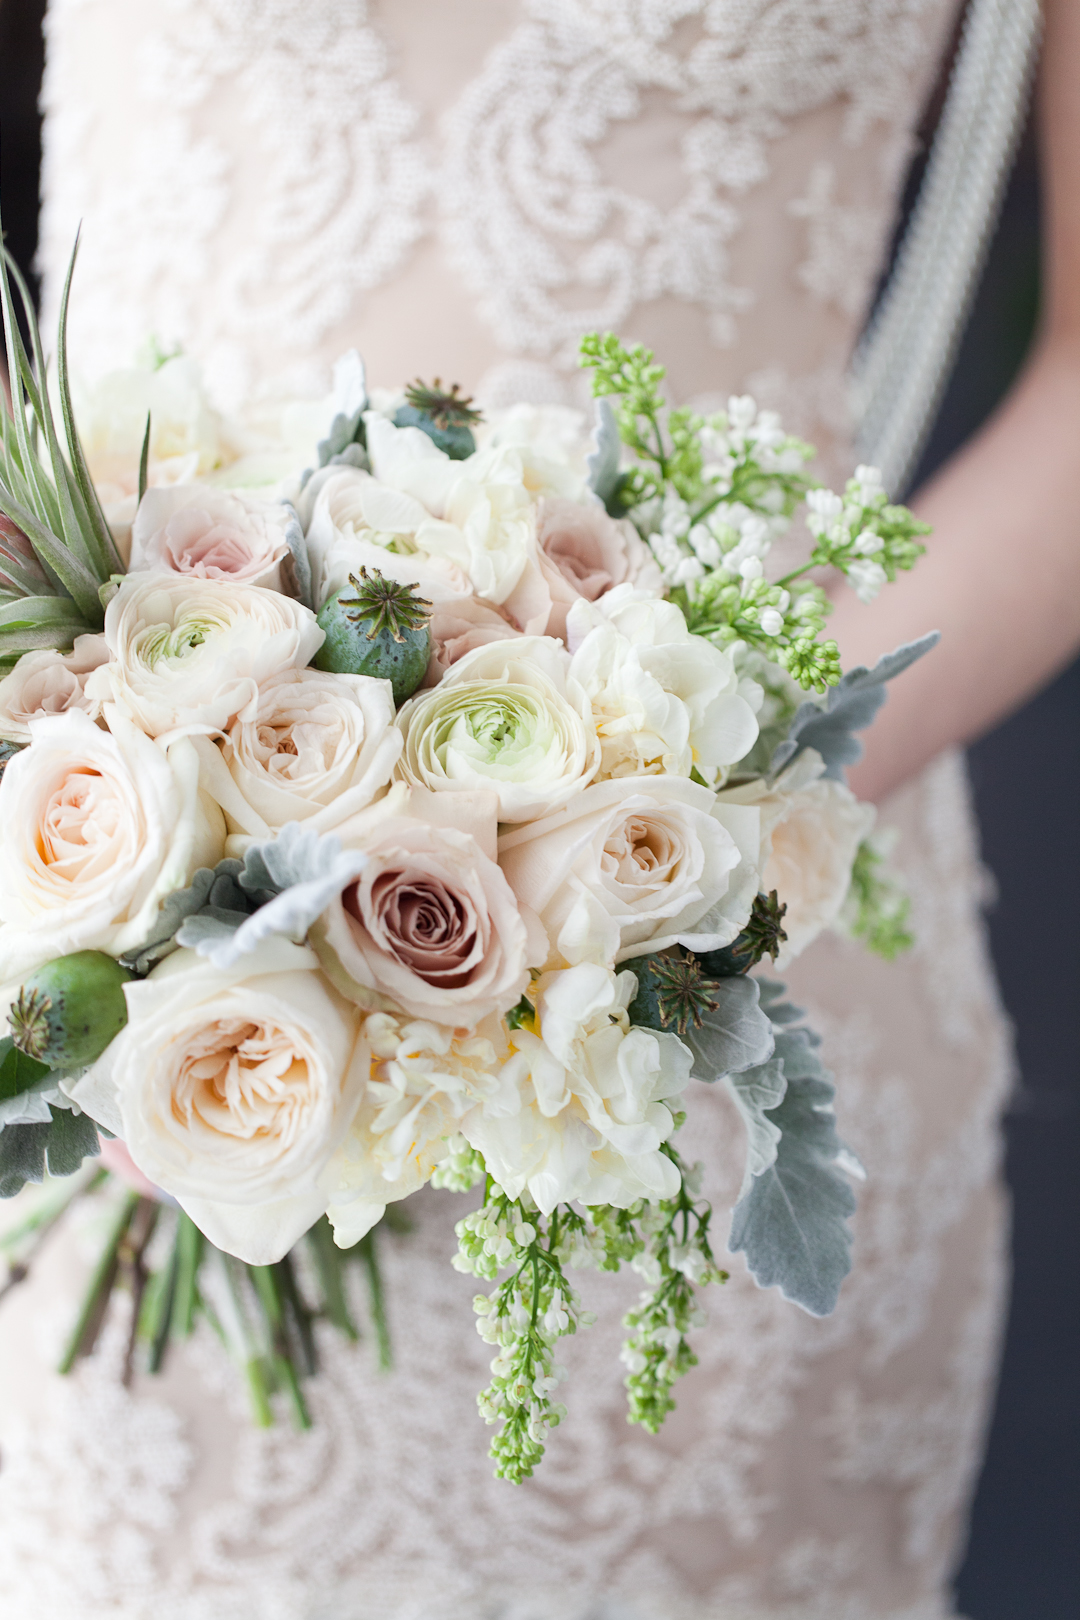 melissa kruse photography - bubbly bride styled shoot (the green building brooklyn) final web-356.jpg